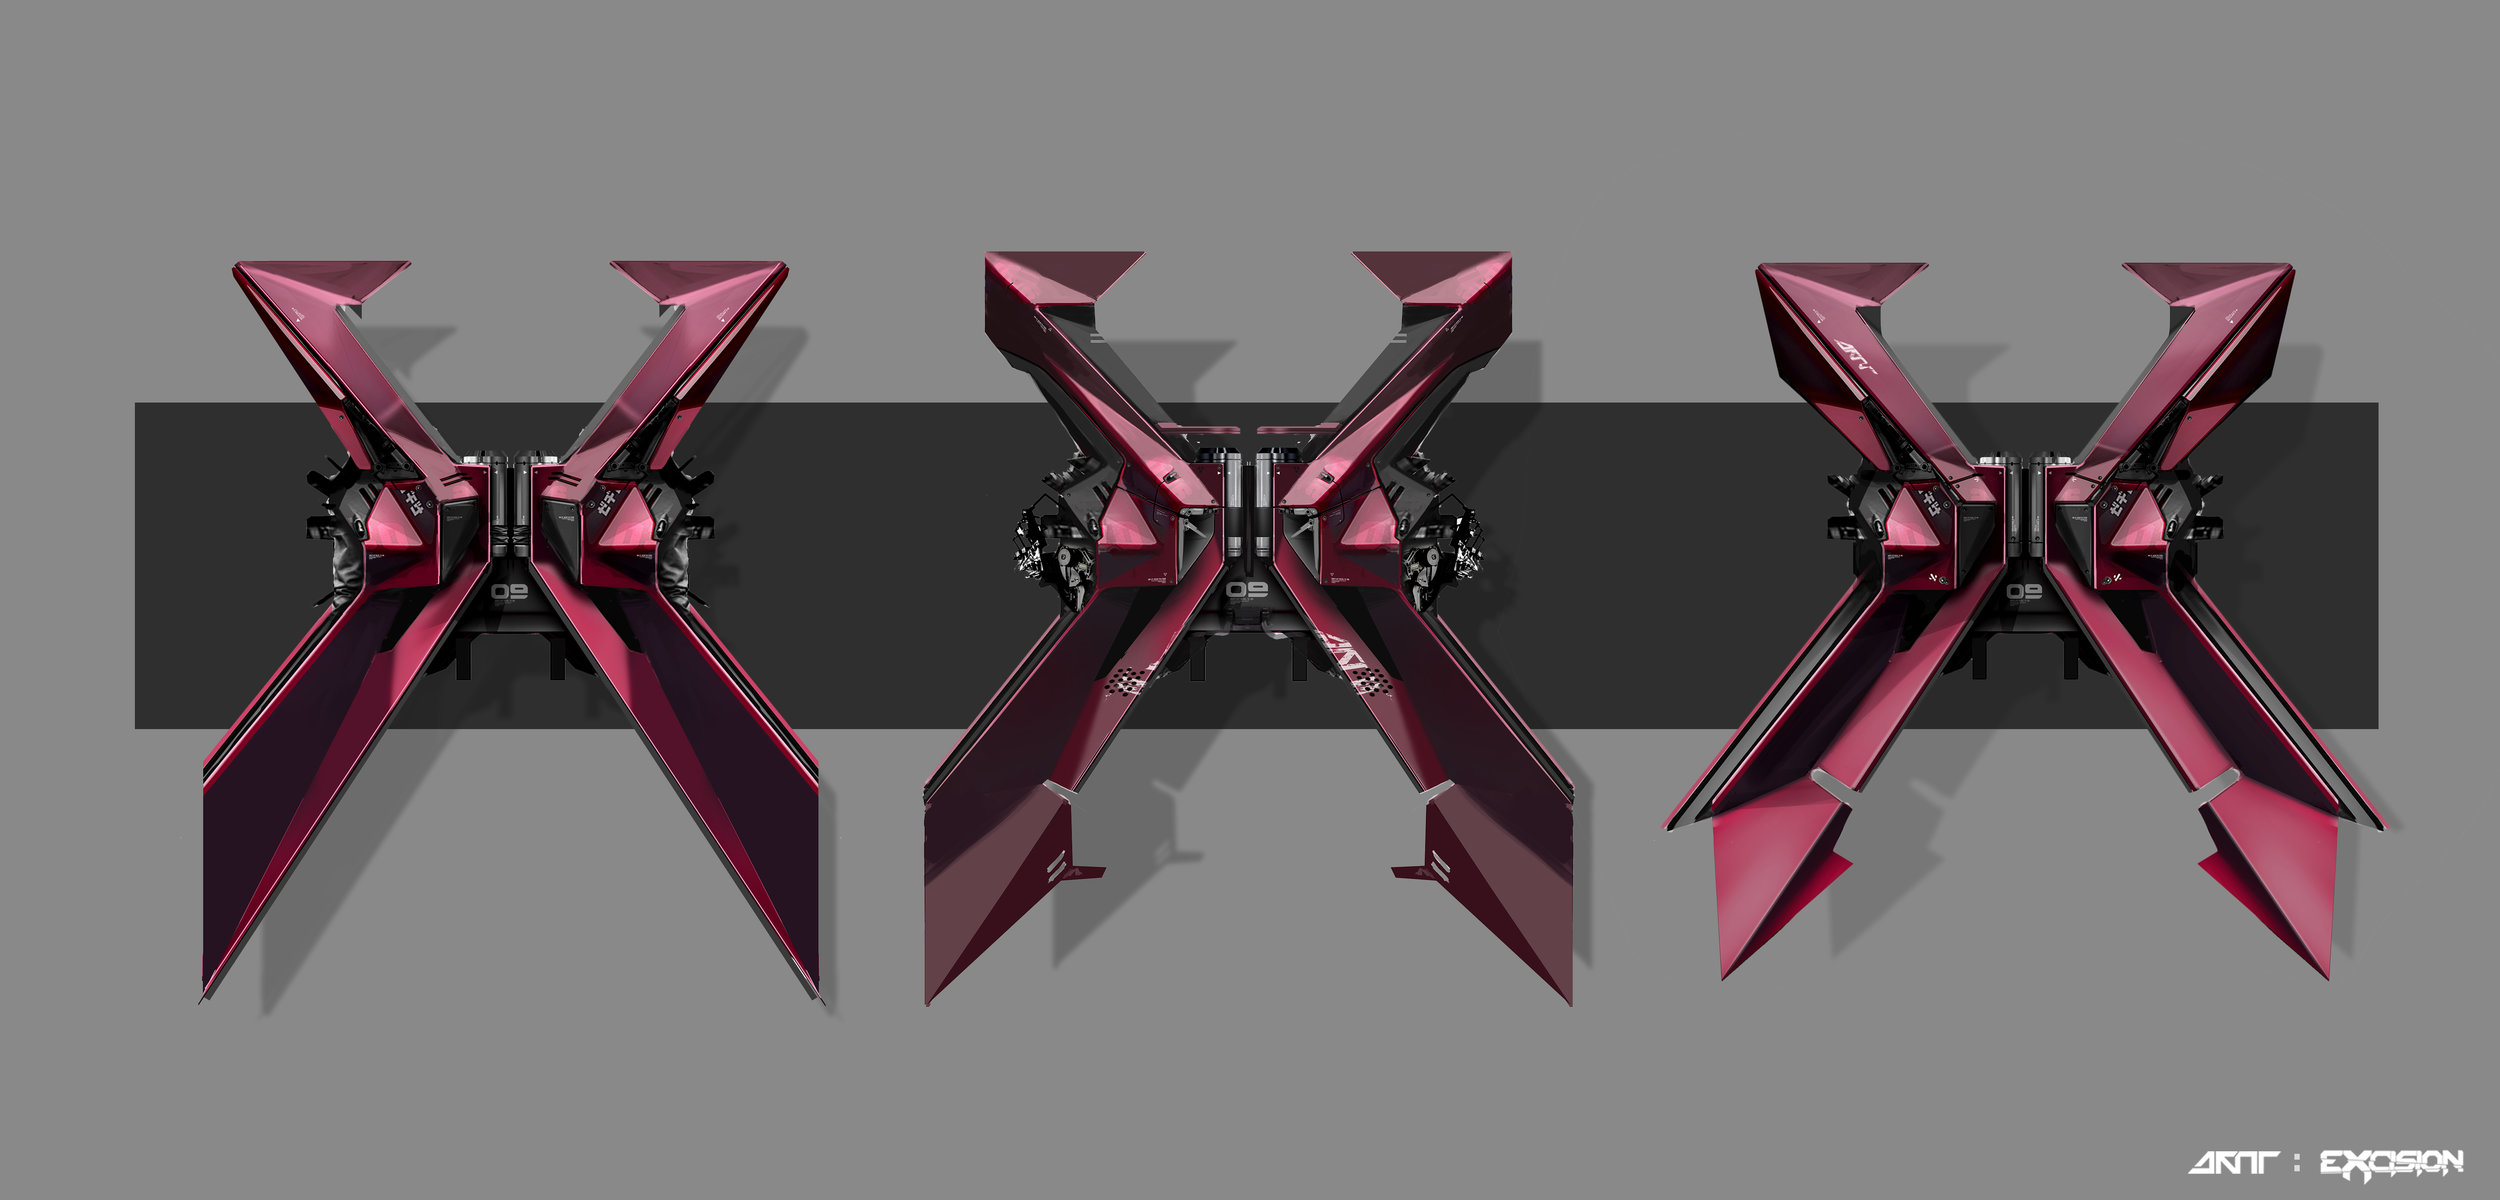 frontview-concepts-refine2.jpg